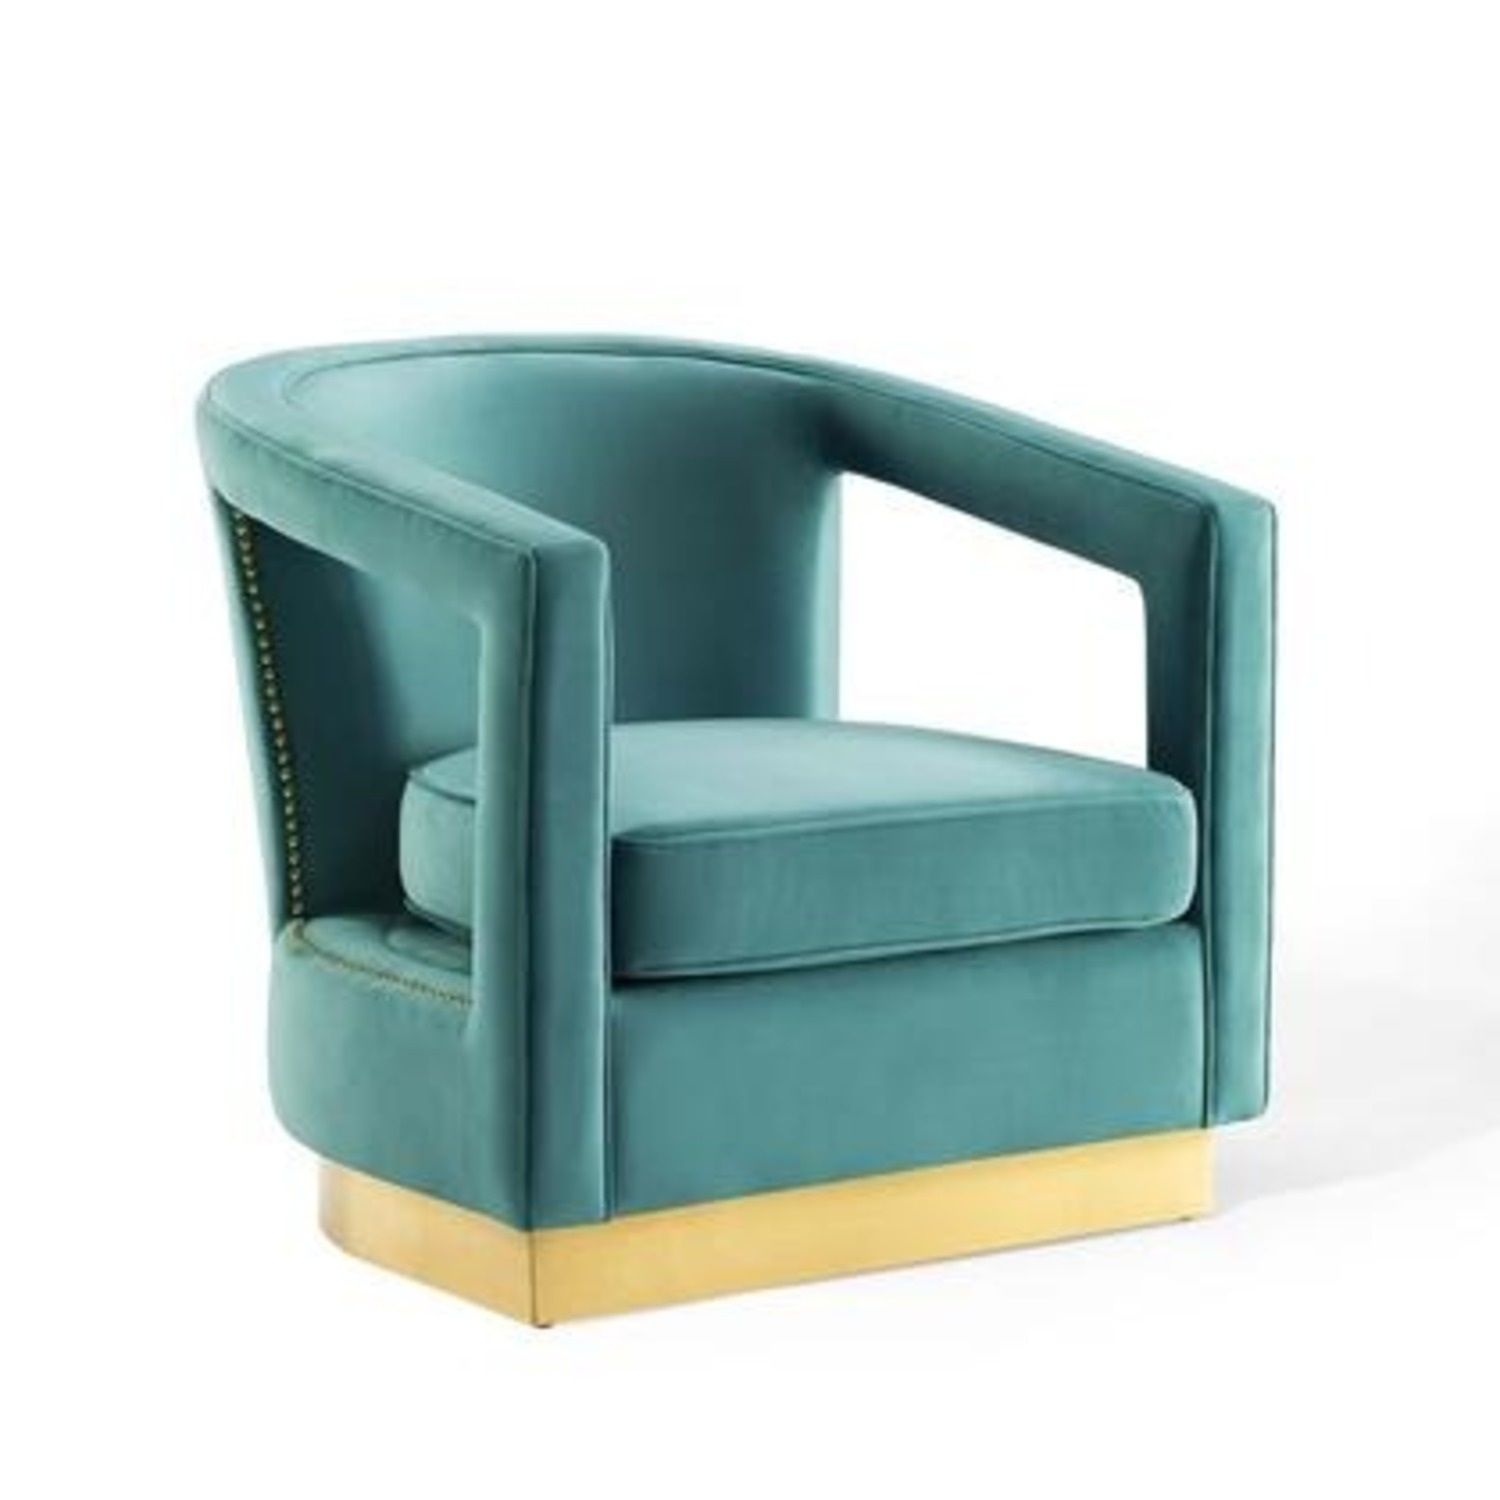 Glam Deco Style Armchair In Mint Velvet Fabric - image-0